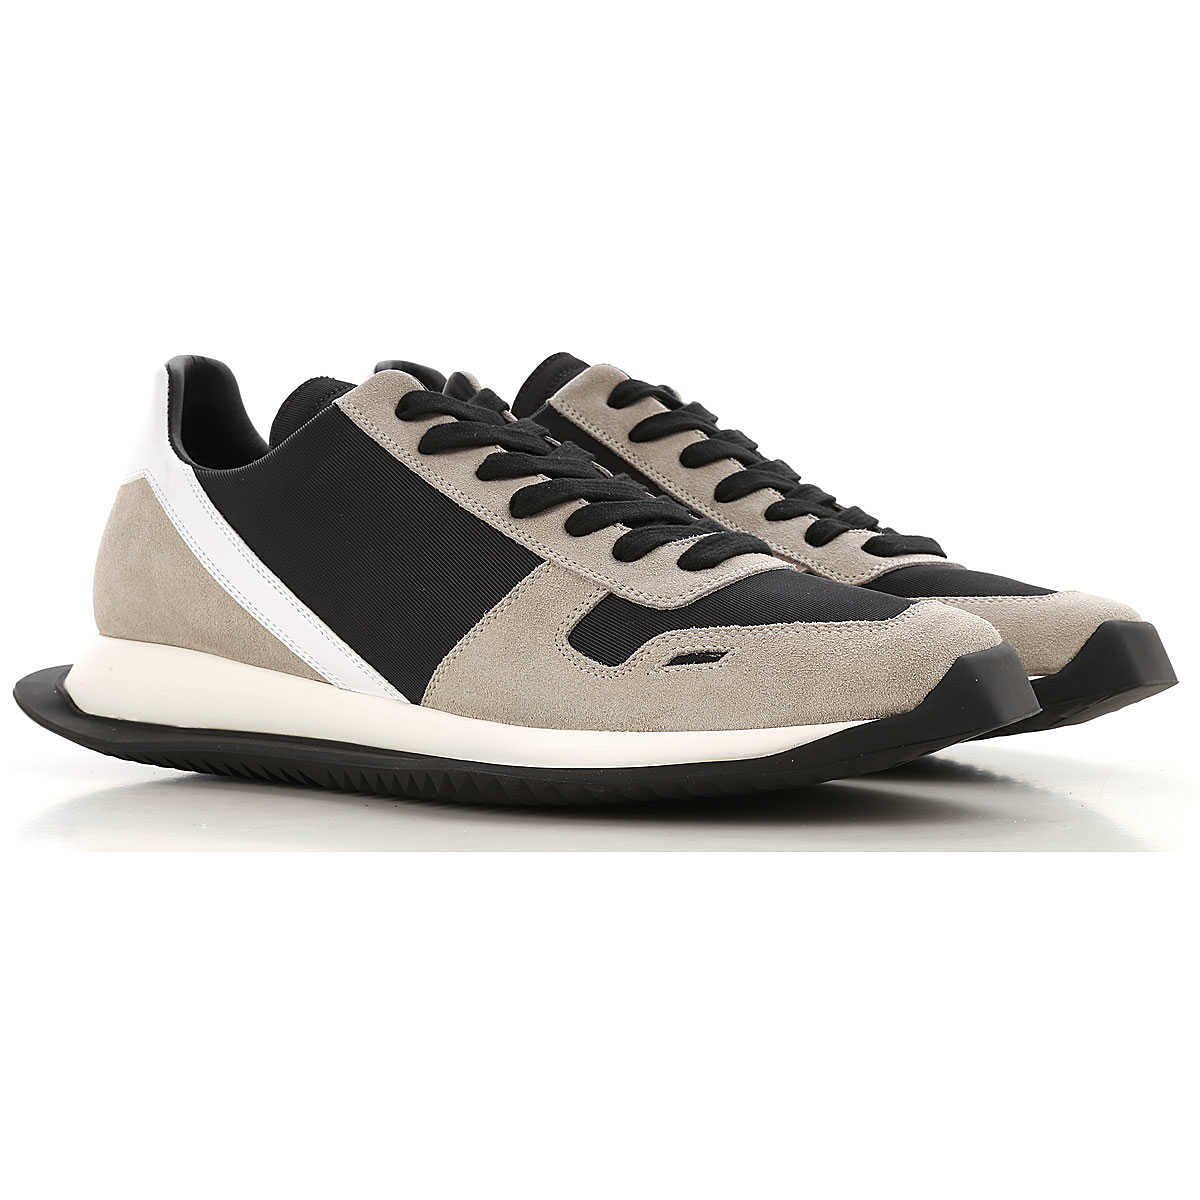 Rick Owens Sneakers for Men On Sale in Outlet Black UK - GOOFASH